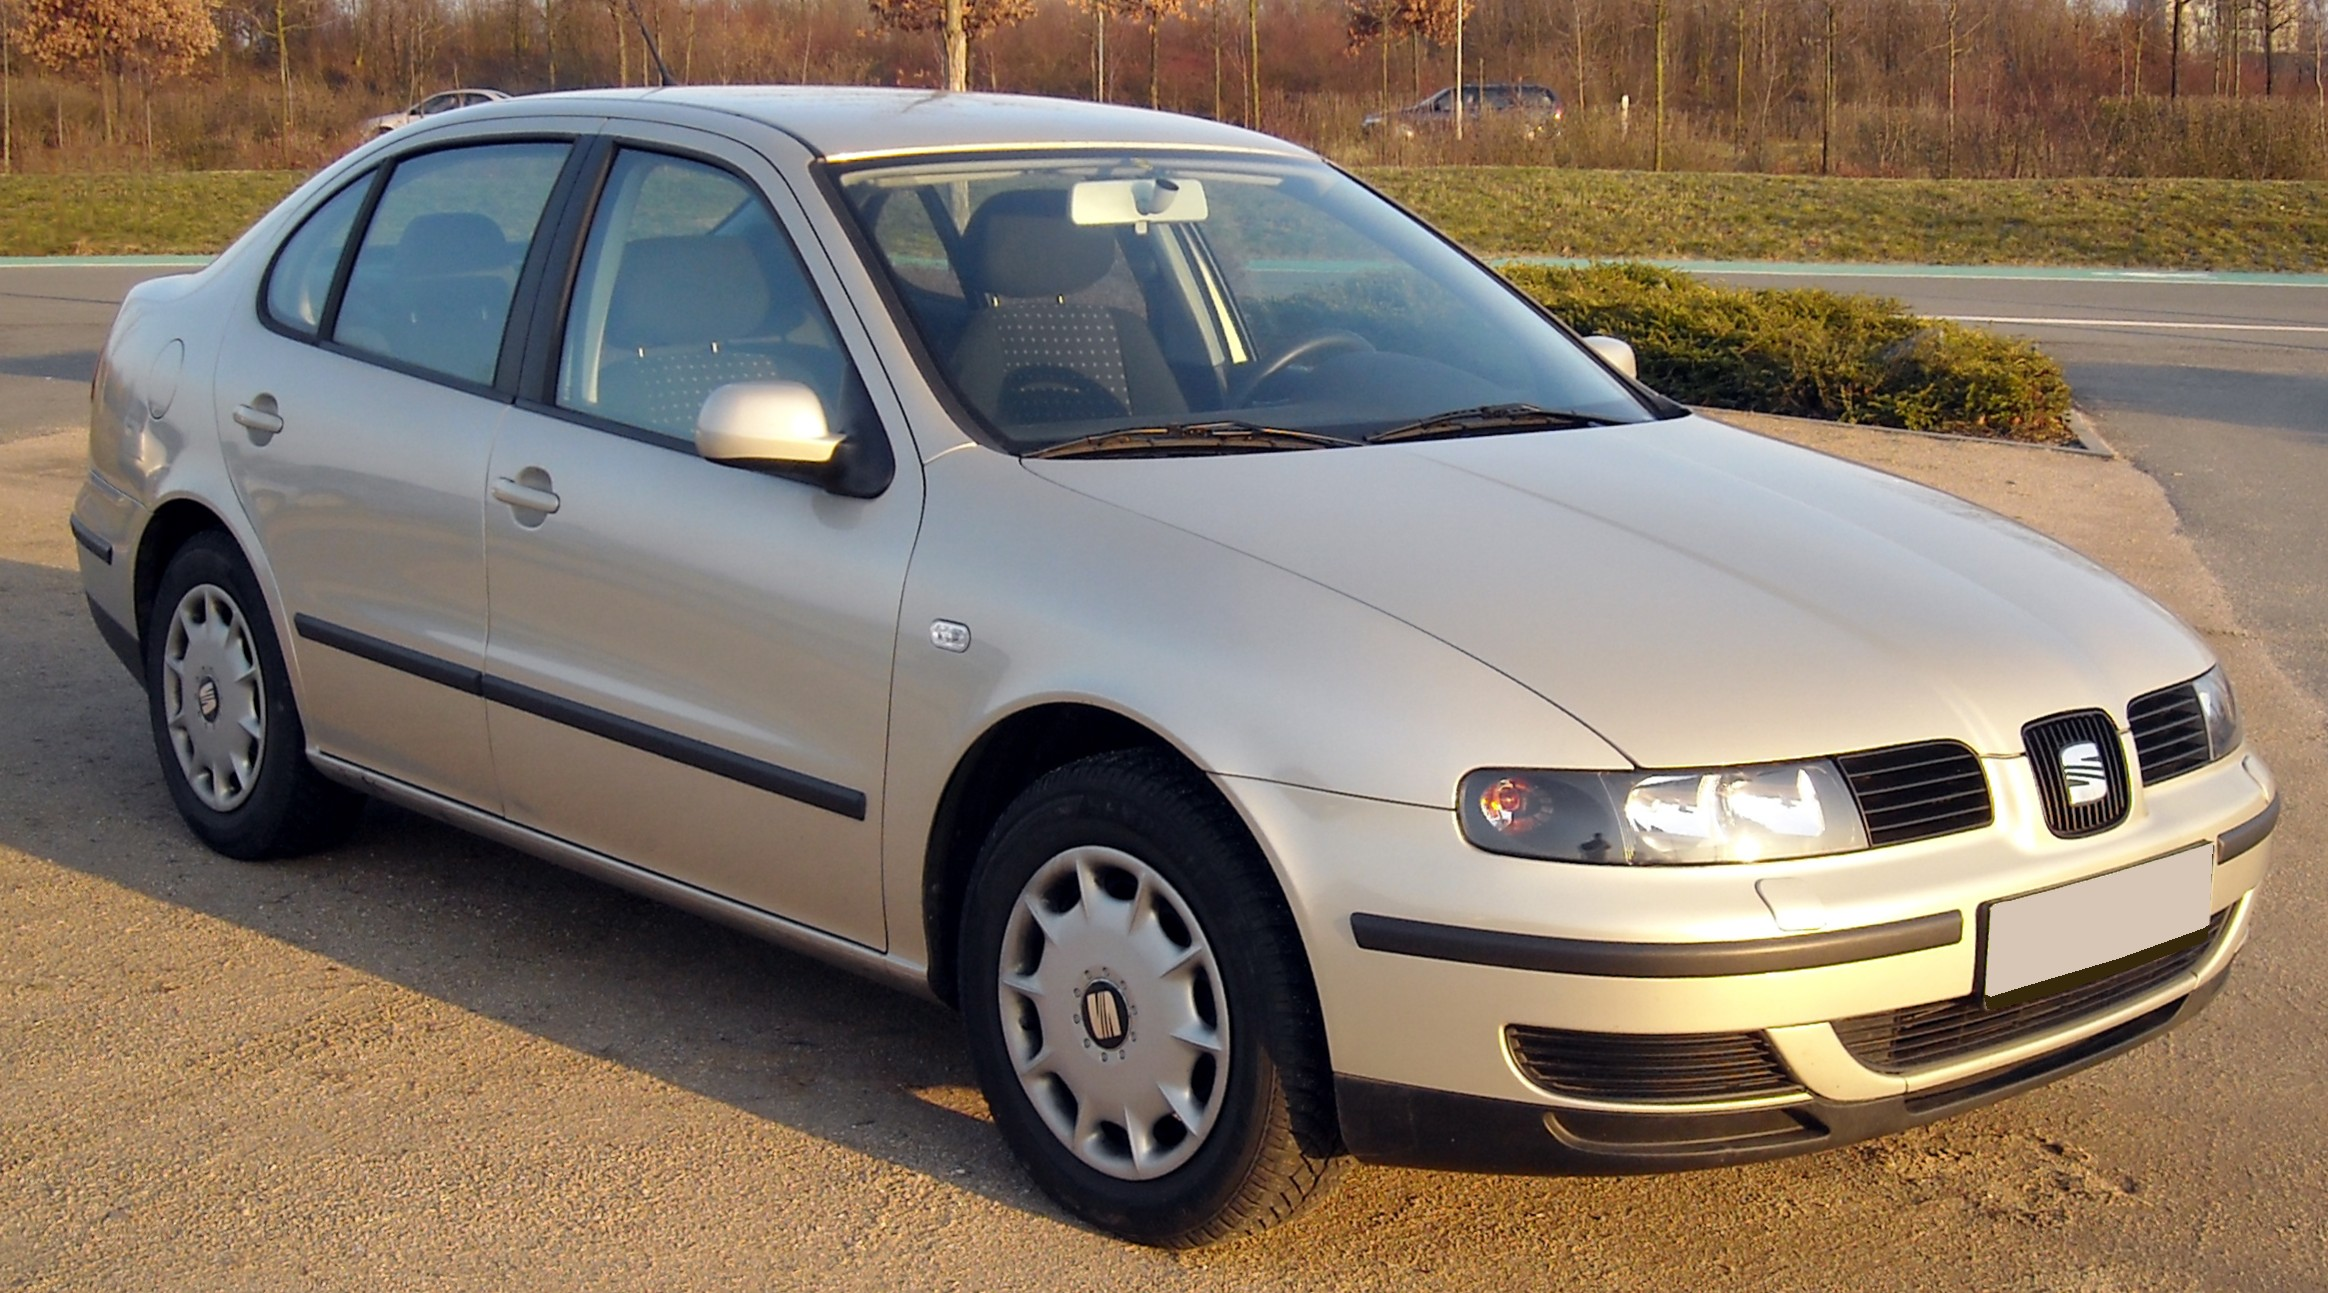 2005 Seat Toledo Iii 5p Pictures Information And